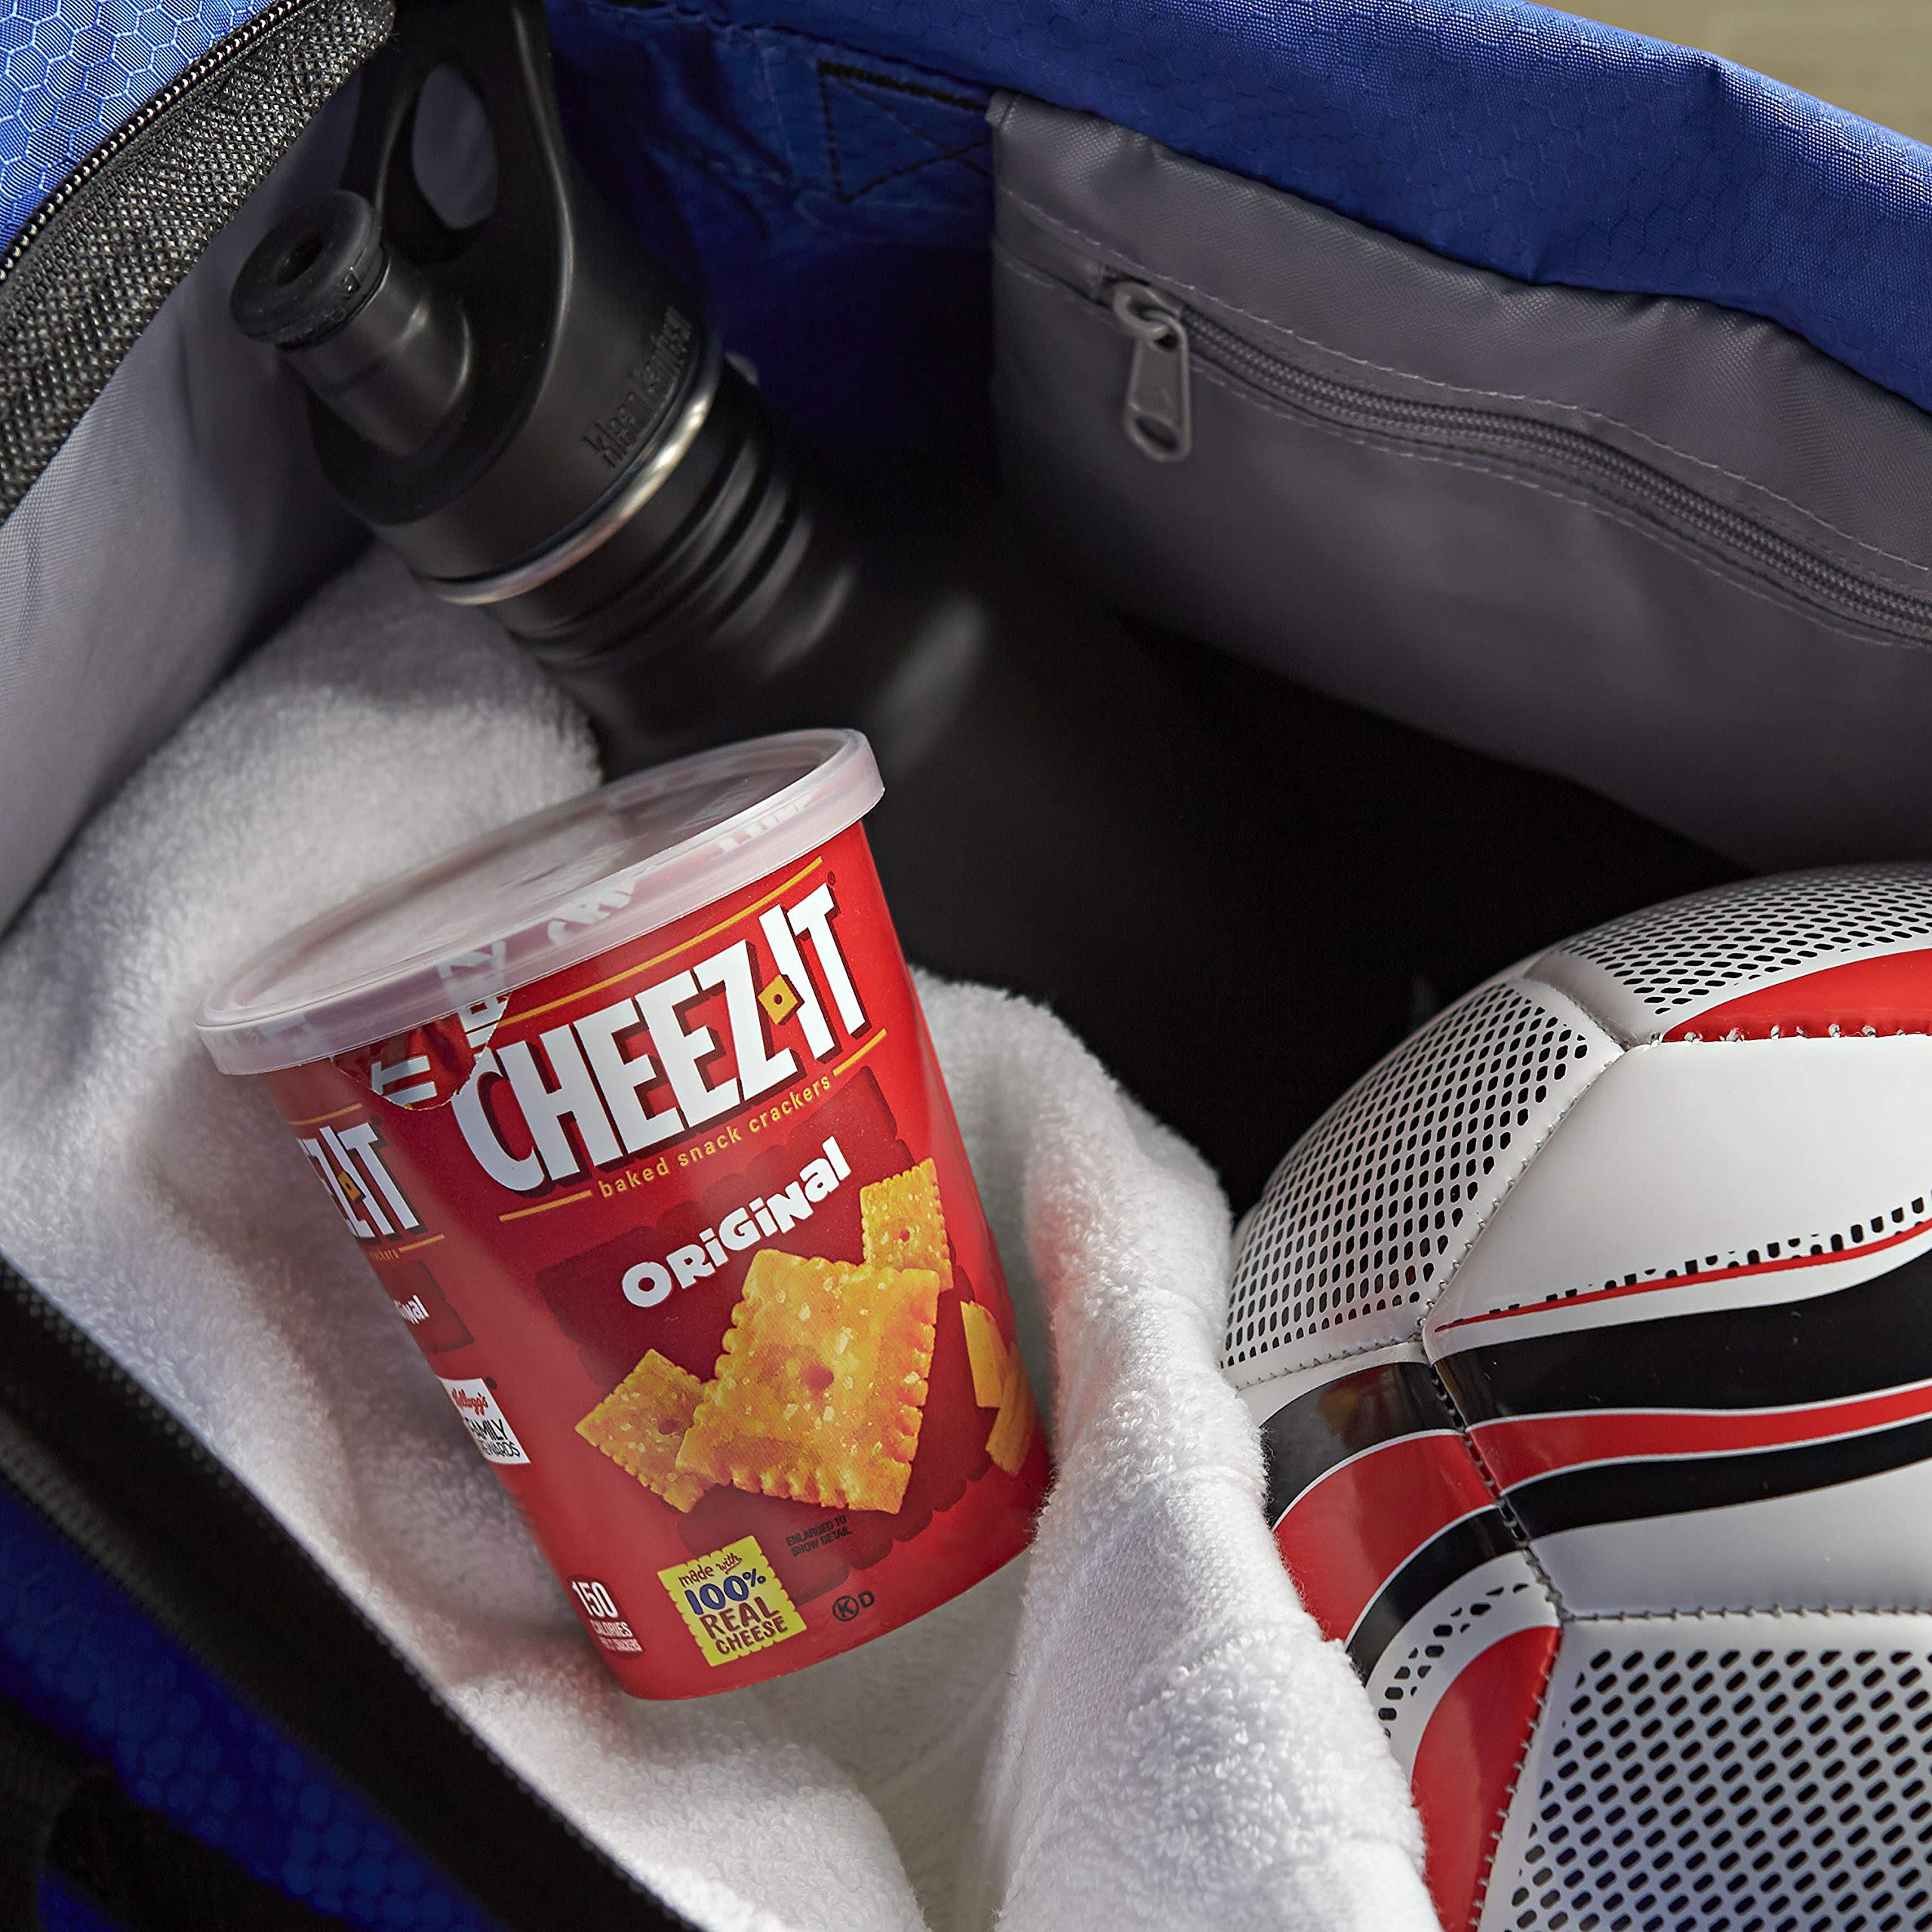 Cheez-It Baked Snack Cheese Crackers in a Cup, Original, Single Serve, 2.2 oz by Cheez-It (Image #4)